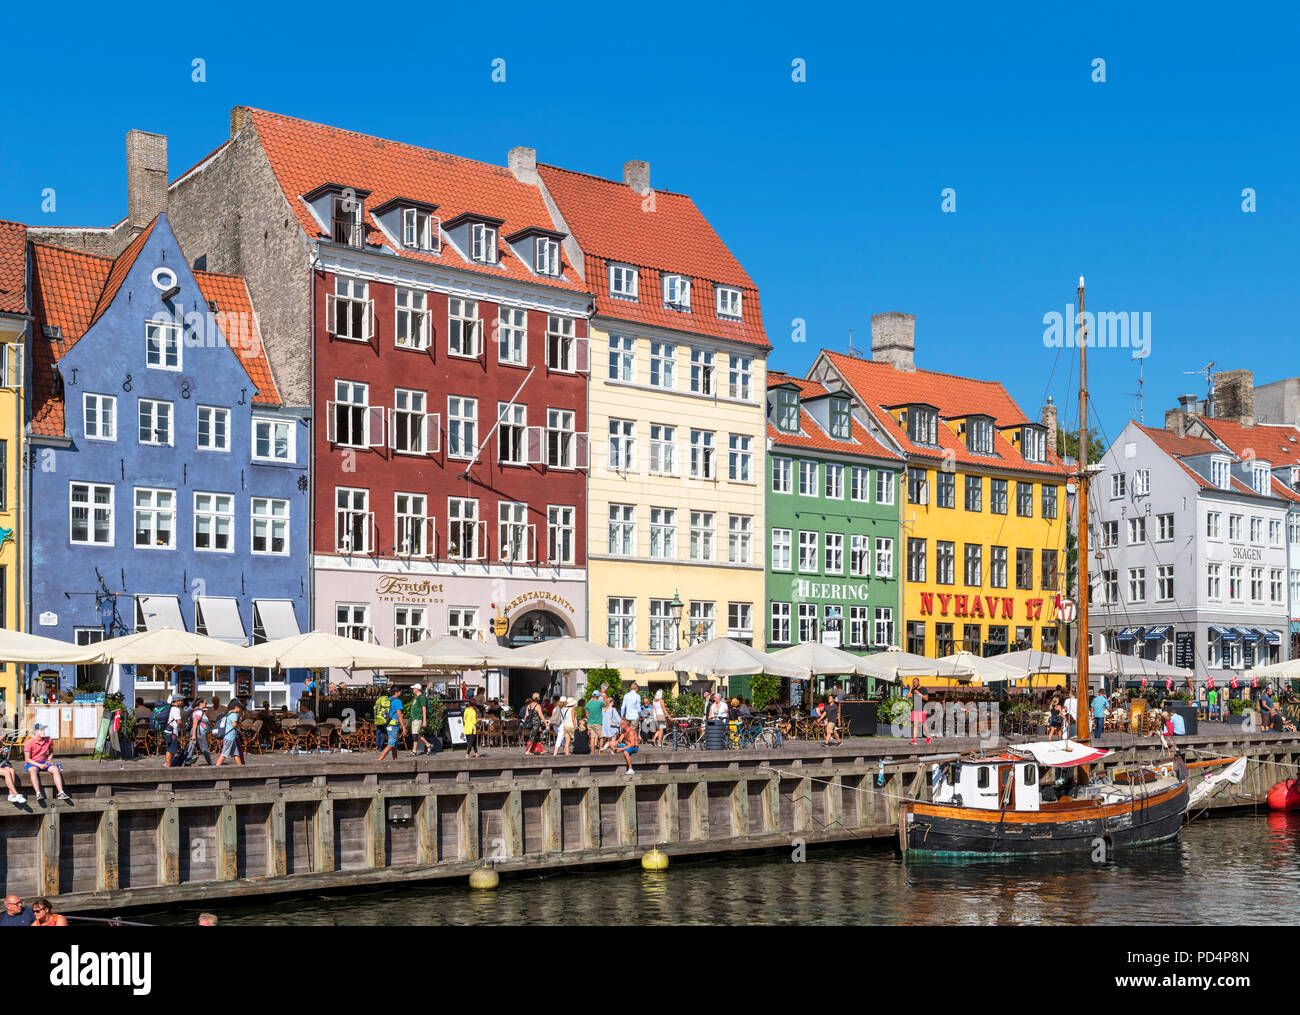 Historic buildings along Nyhavn canal, Copenhagen, Denmark. The oldest house is no 9 on the far left (blue building), Copenhagen, Denmark - Stock Image